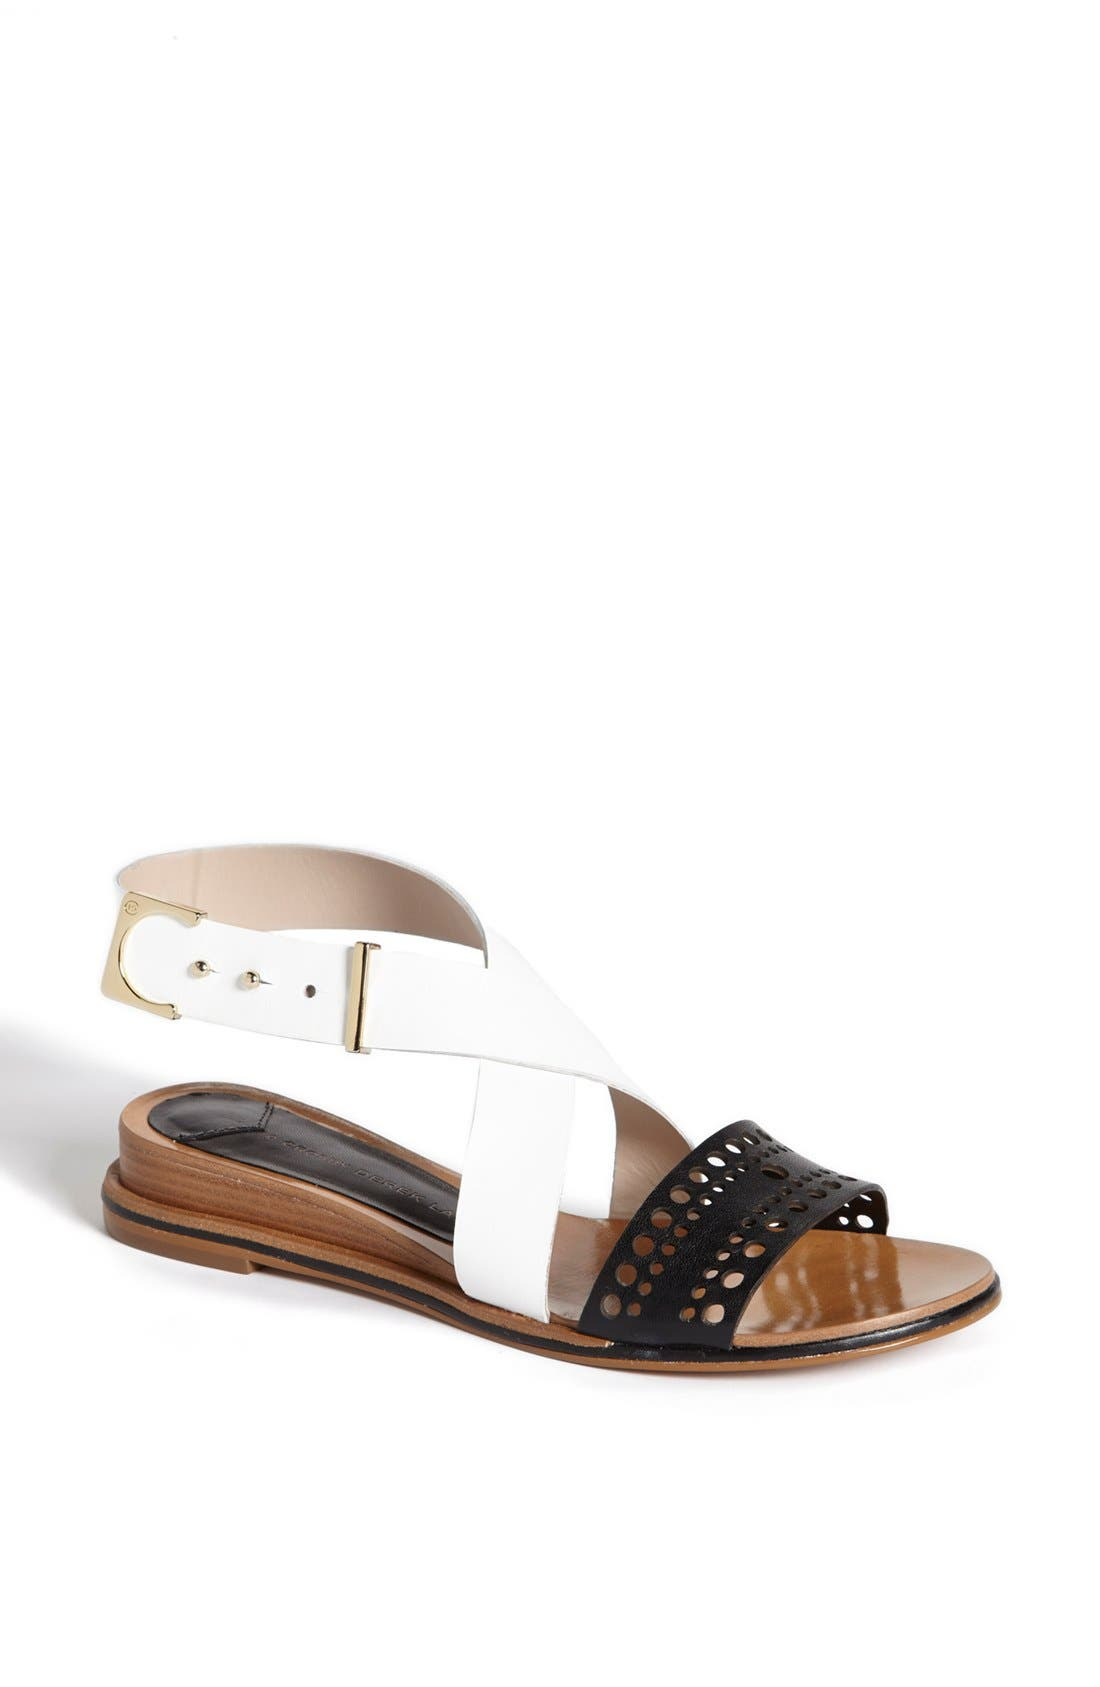 Alternate Image 1 Selected - Derek Lam 10 Crosby 'Pilar' Sandal